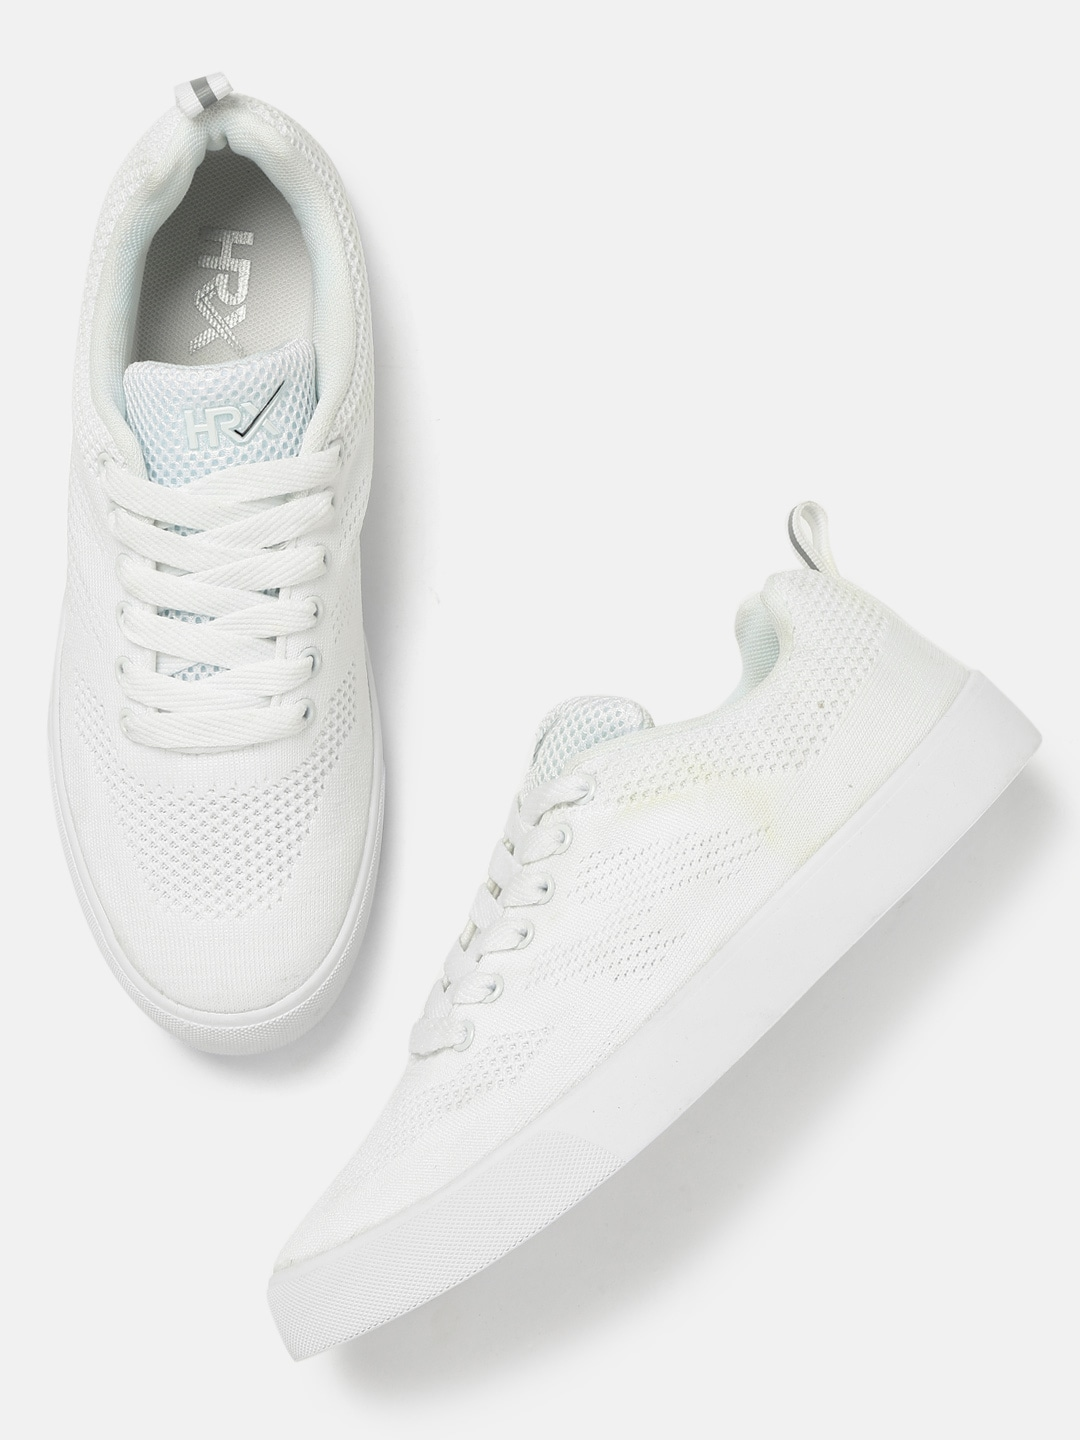 Hrx By Hrithik Roshan White Sneakers For Men Online In India At Best -9210